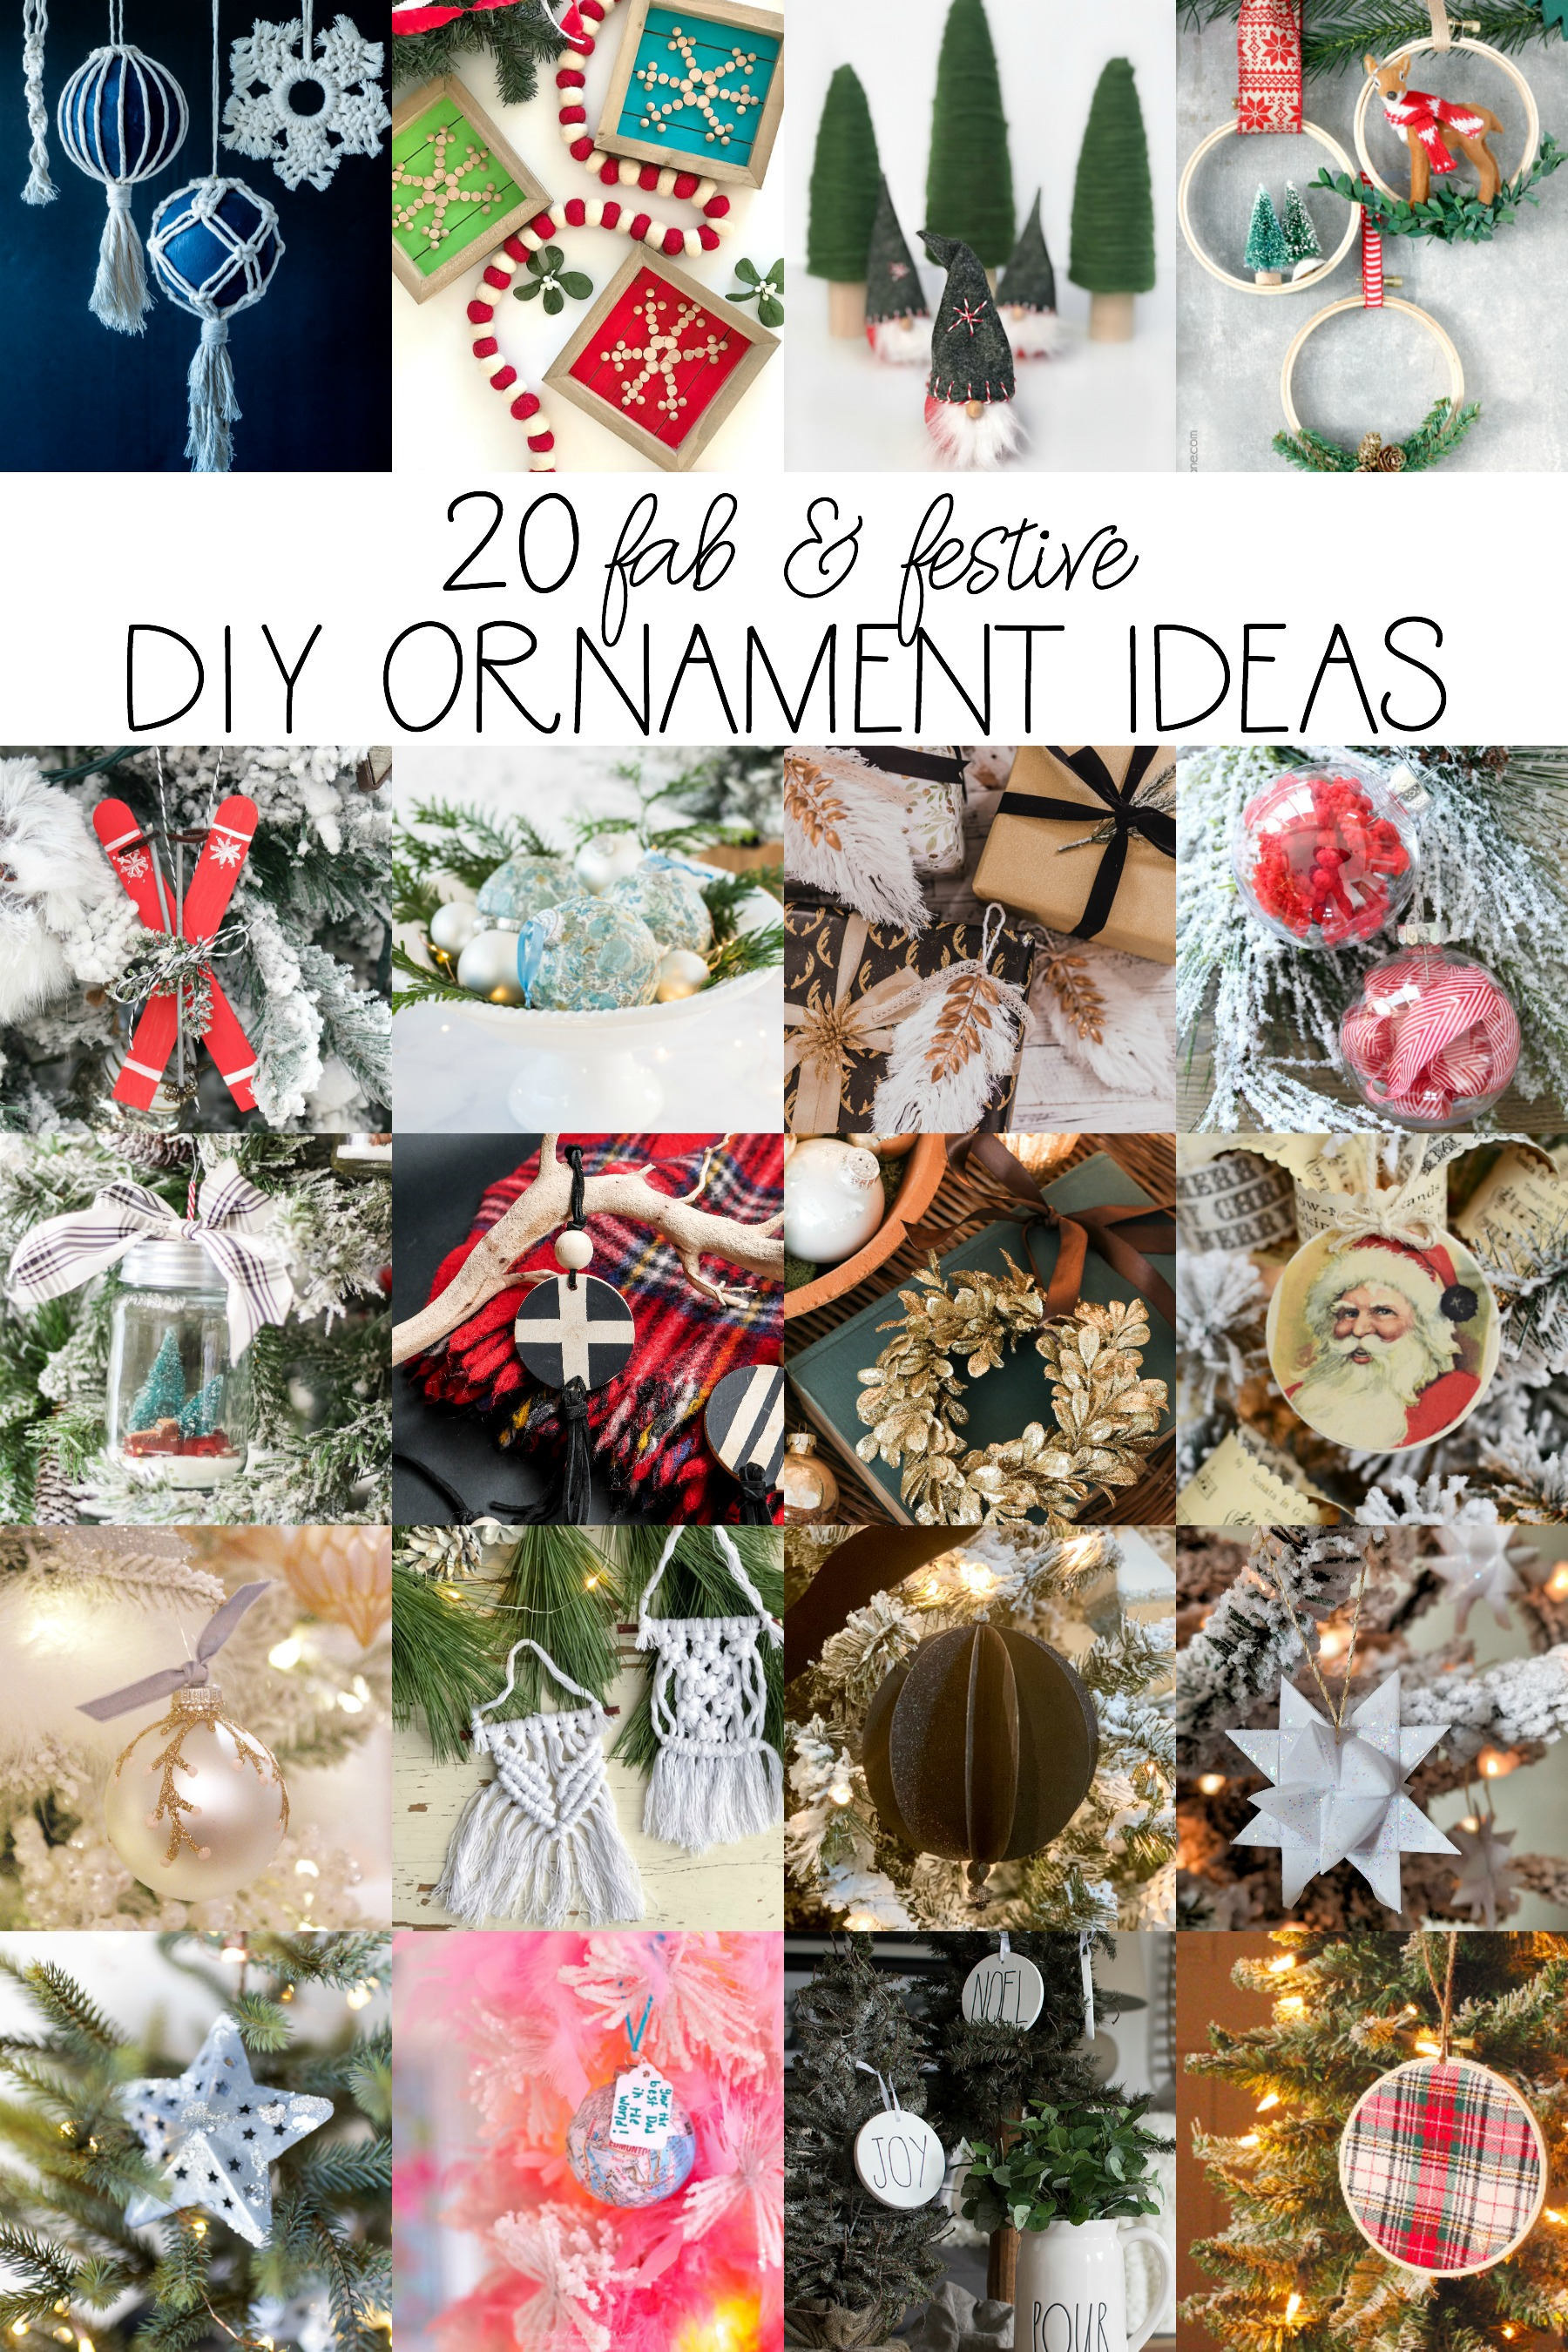 20 fab and festive diy ornament ideas